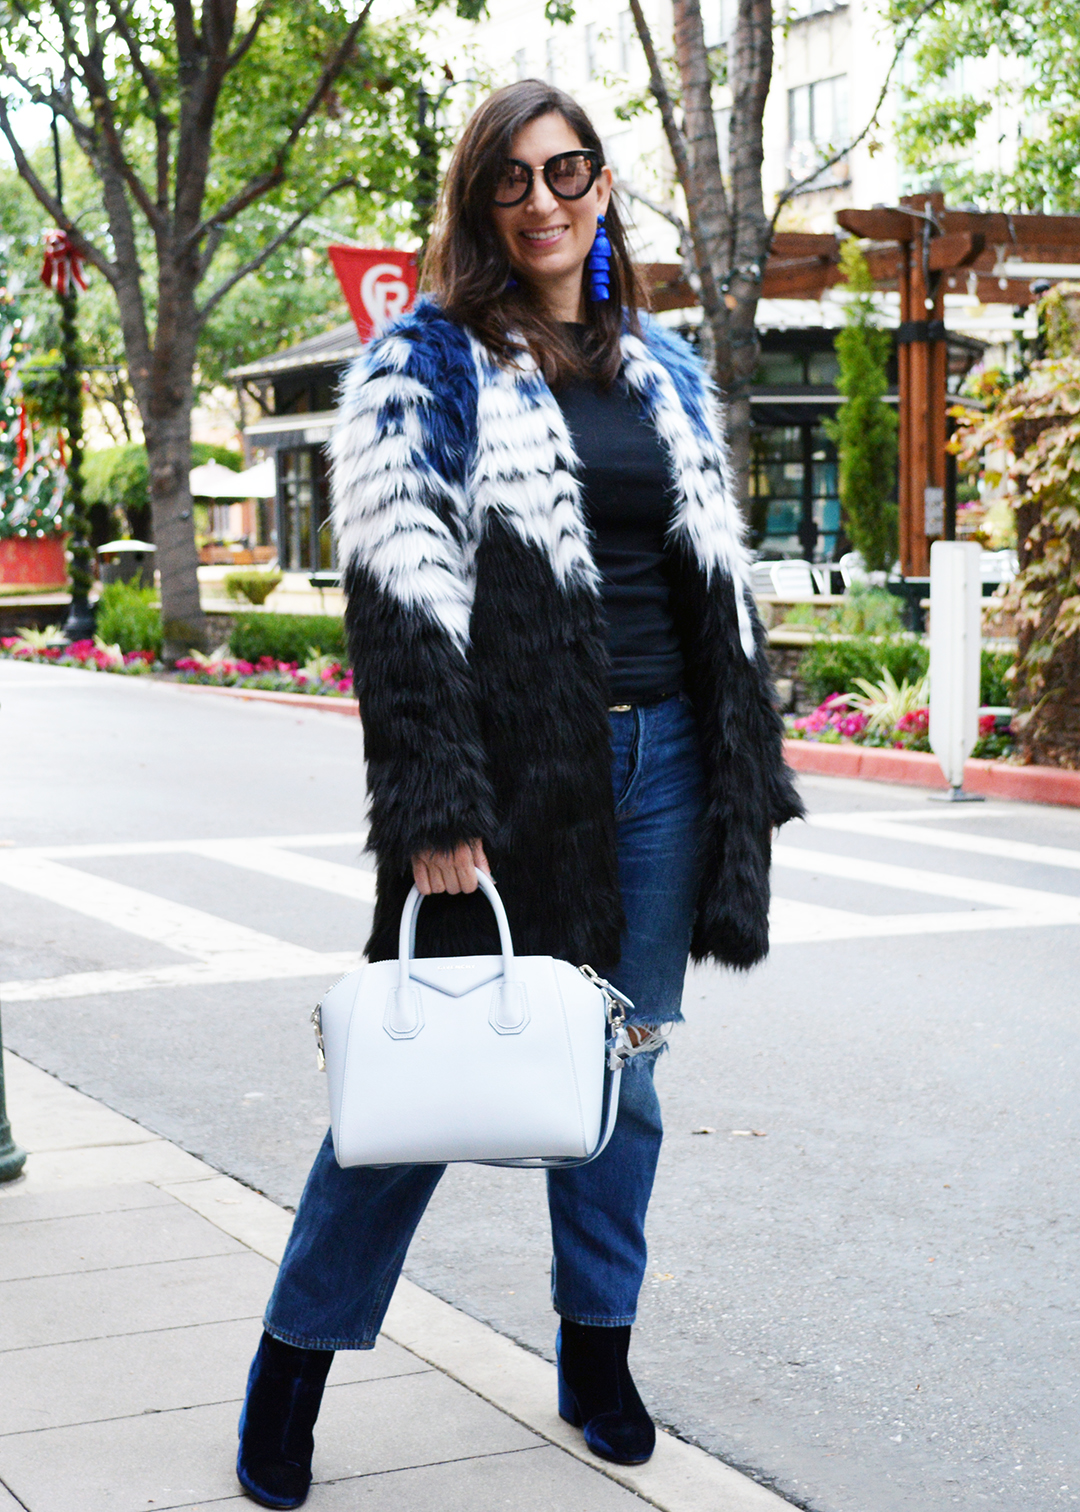 winter faux fur coat outfit idea